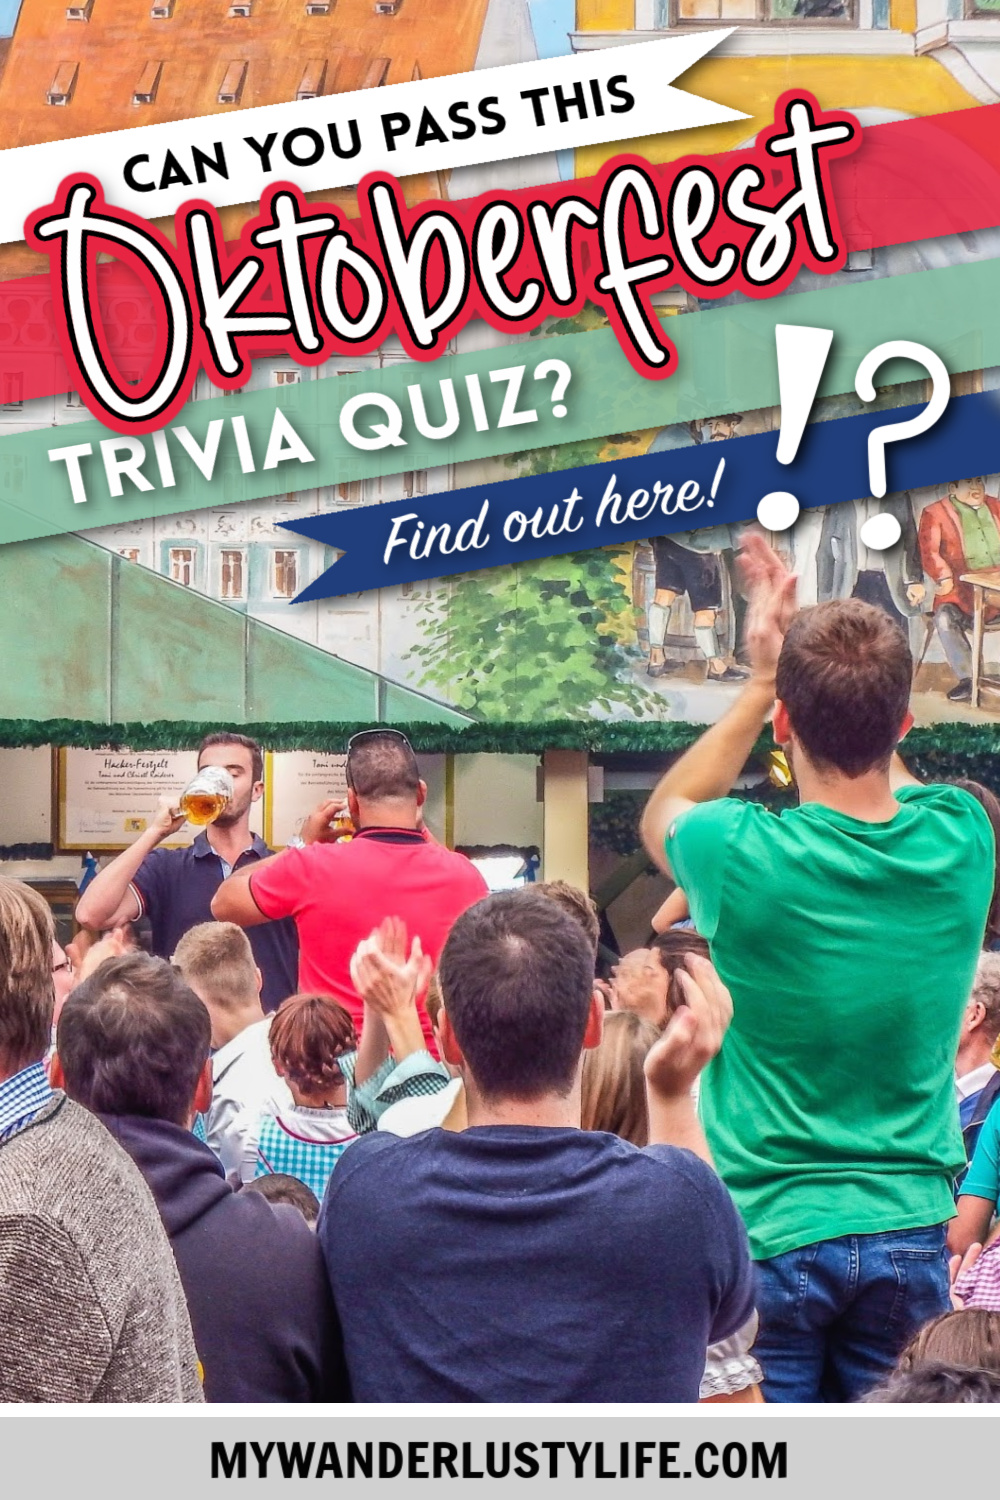 Oktoberfest Trivia Quiz: How Much Do You Really Know About Oktoberfest in Munich, Germany? Find out here!